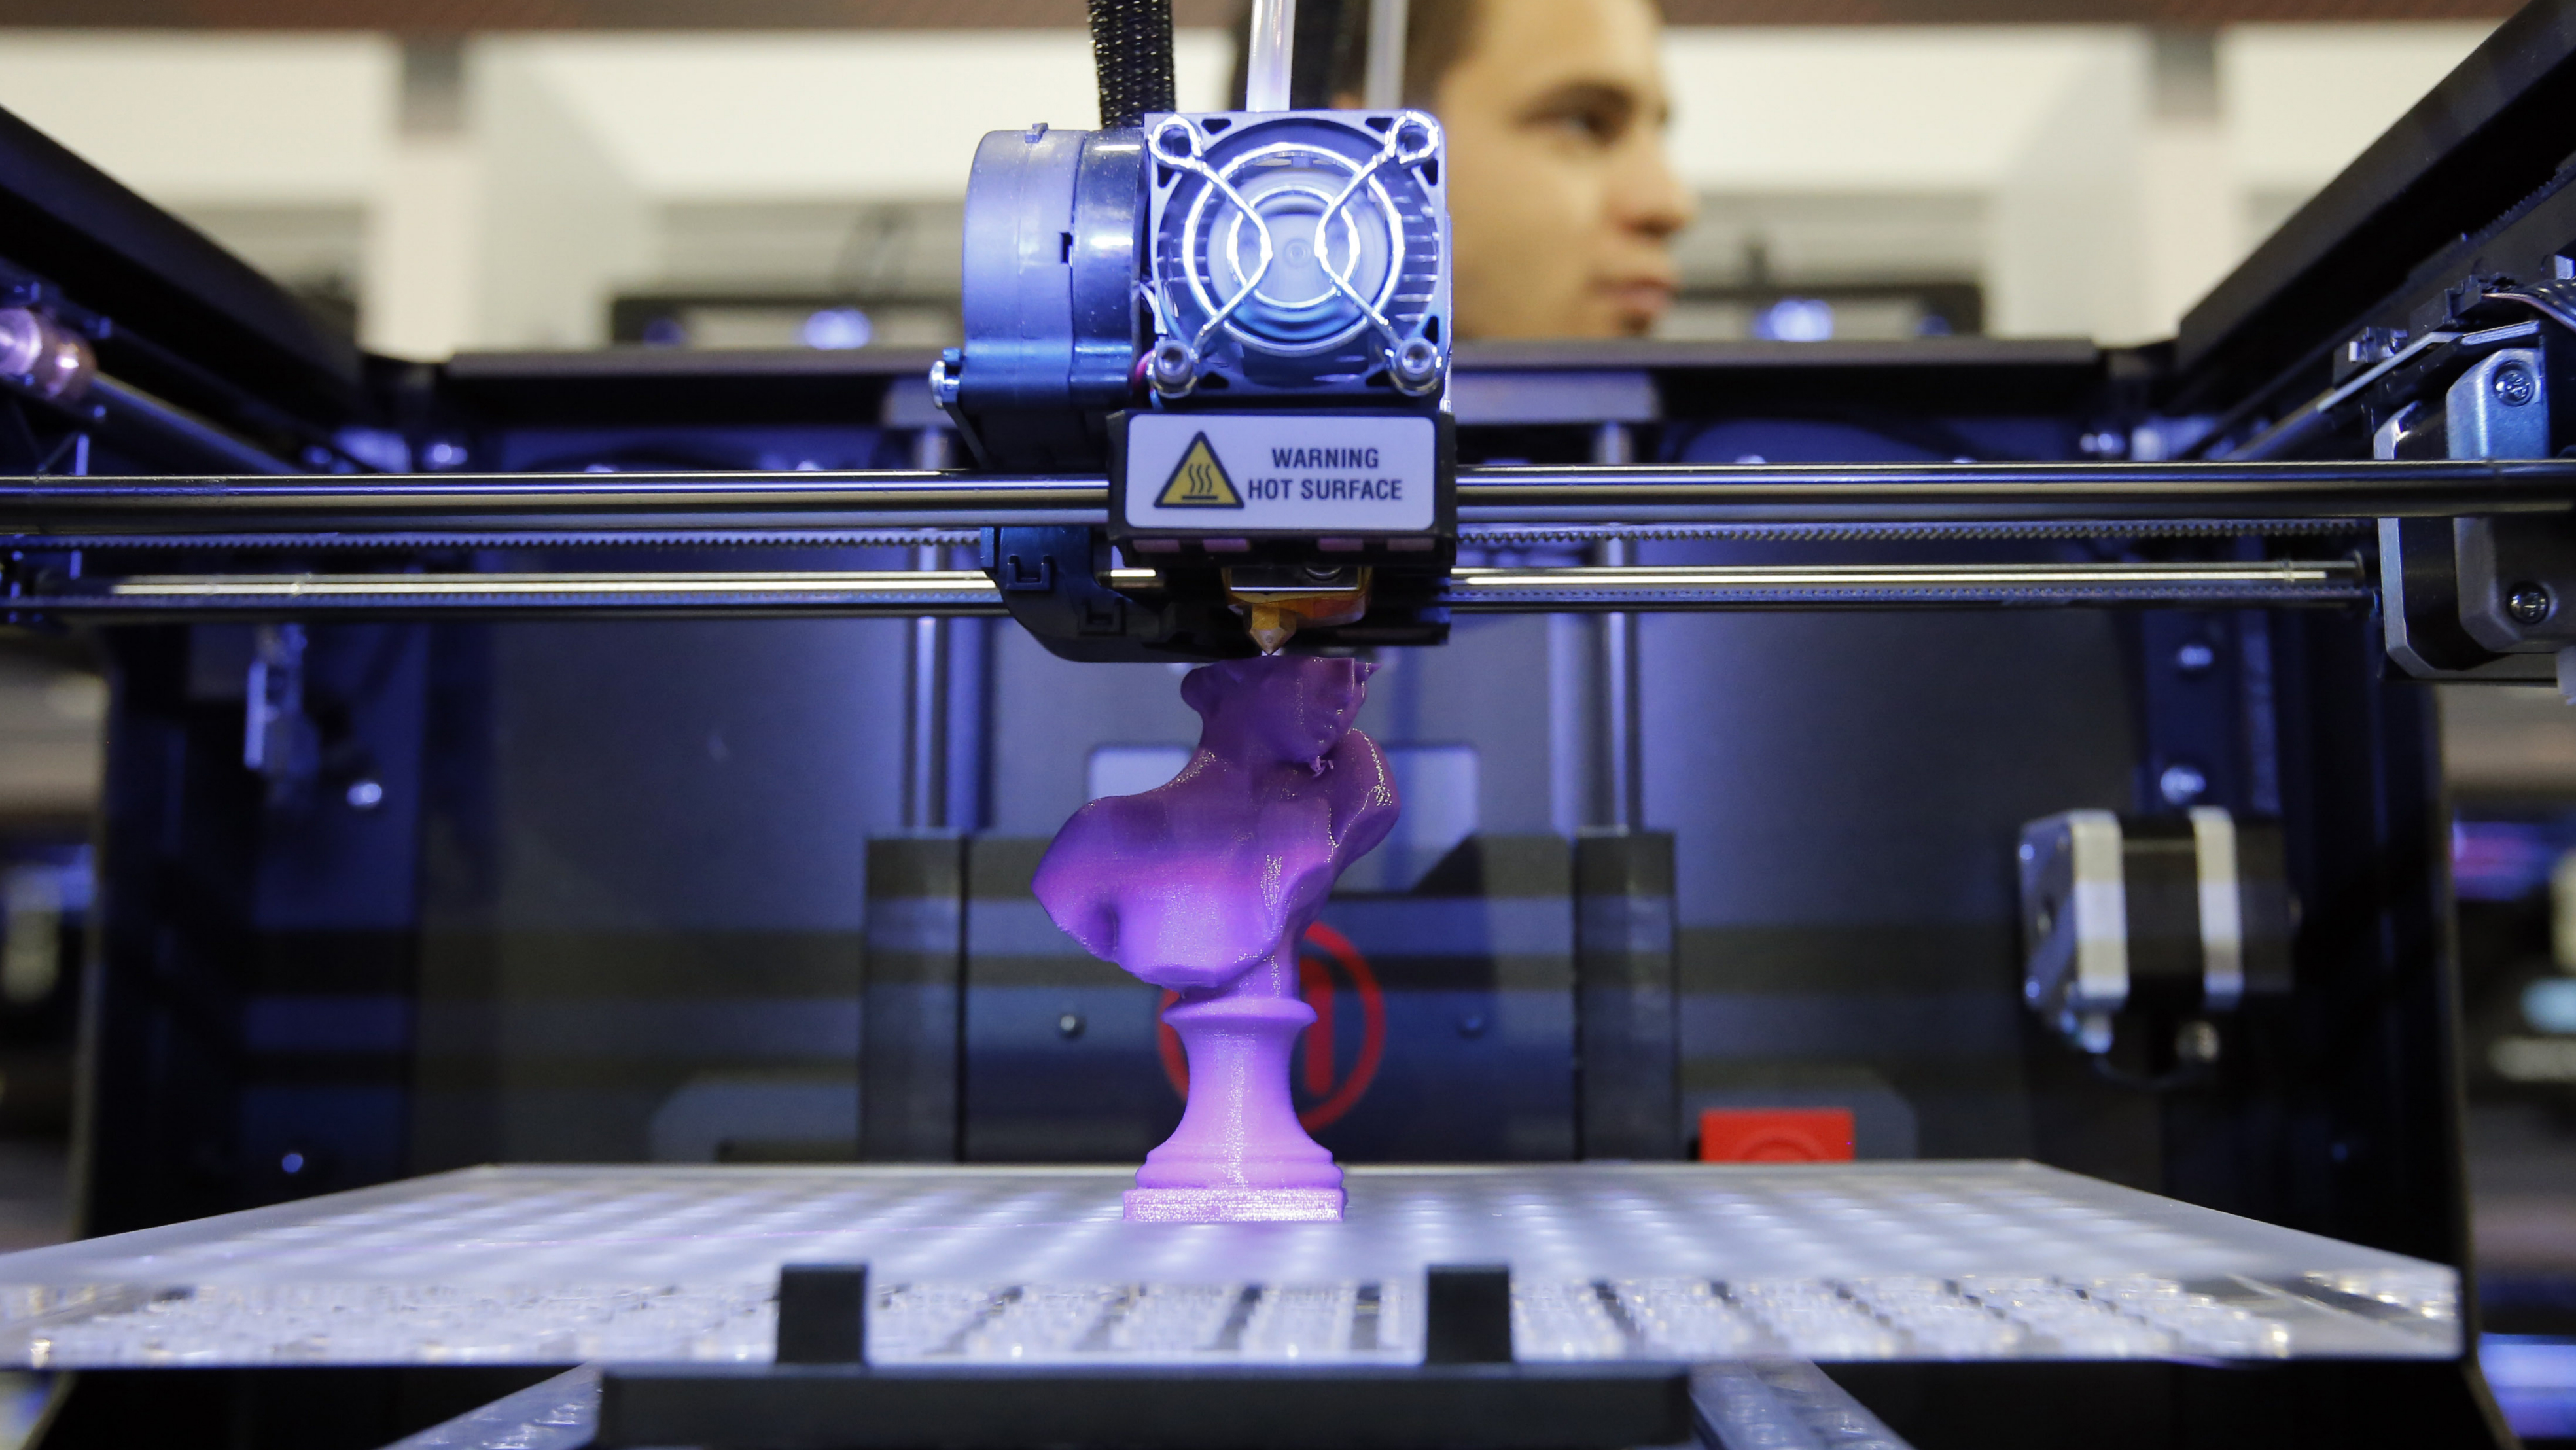 Turns out that giving people the ability to 3D print random tchotchkes is worth about $600 million.